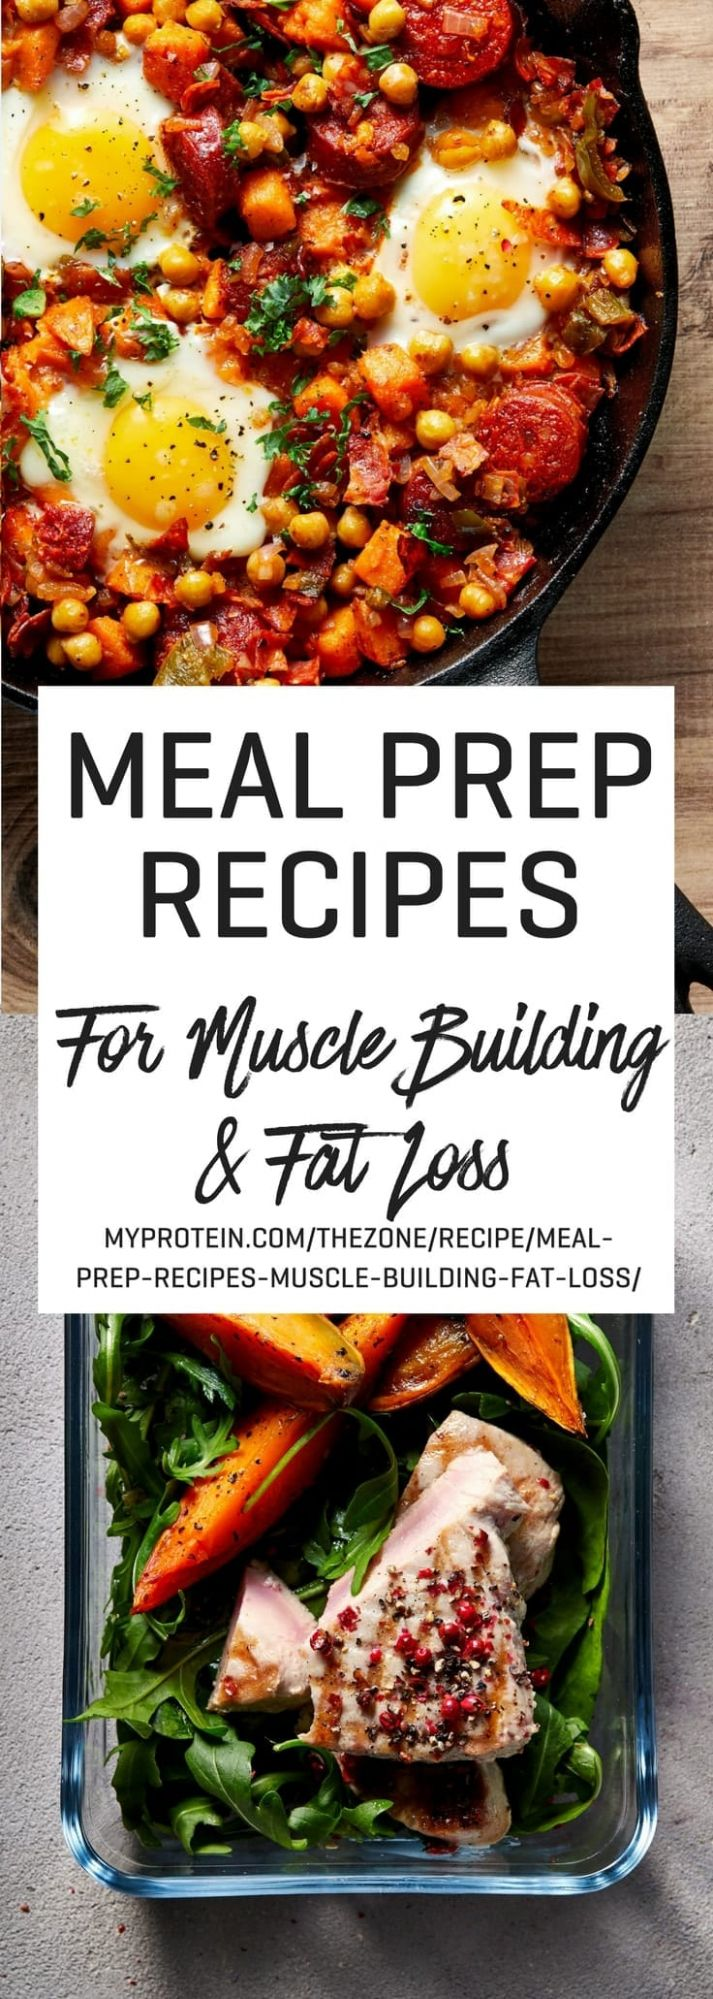 8 Meal Prep Recipes For Muscle Building & Fat Loss | MYPROTEIN™